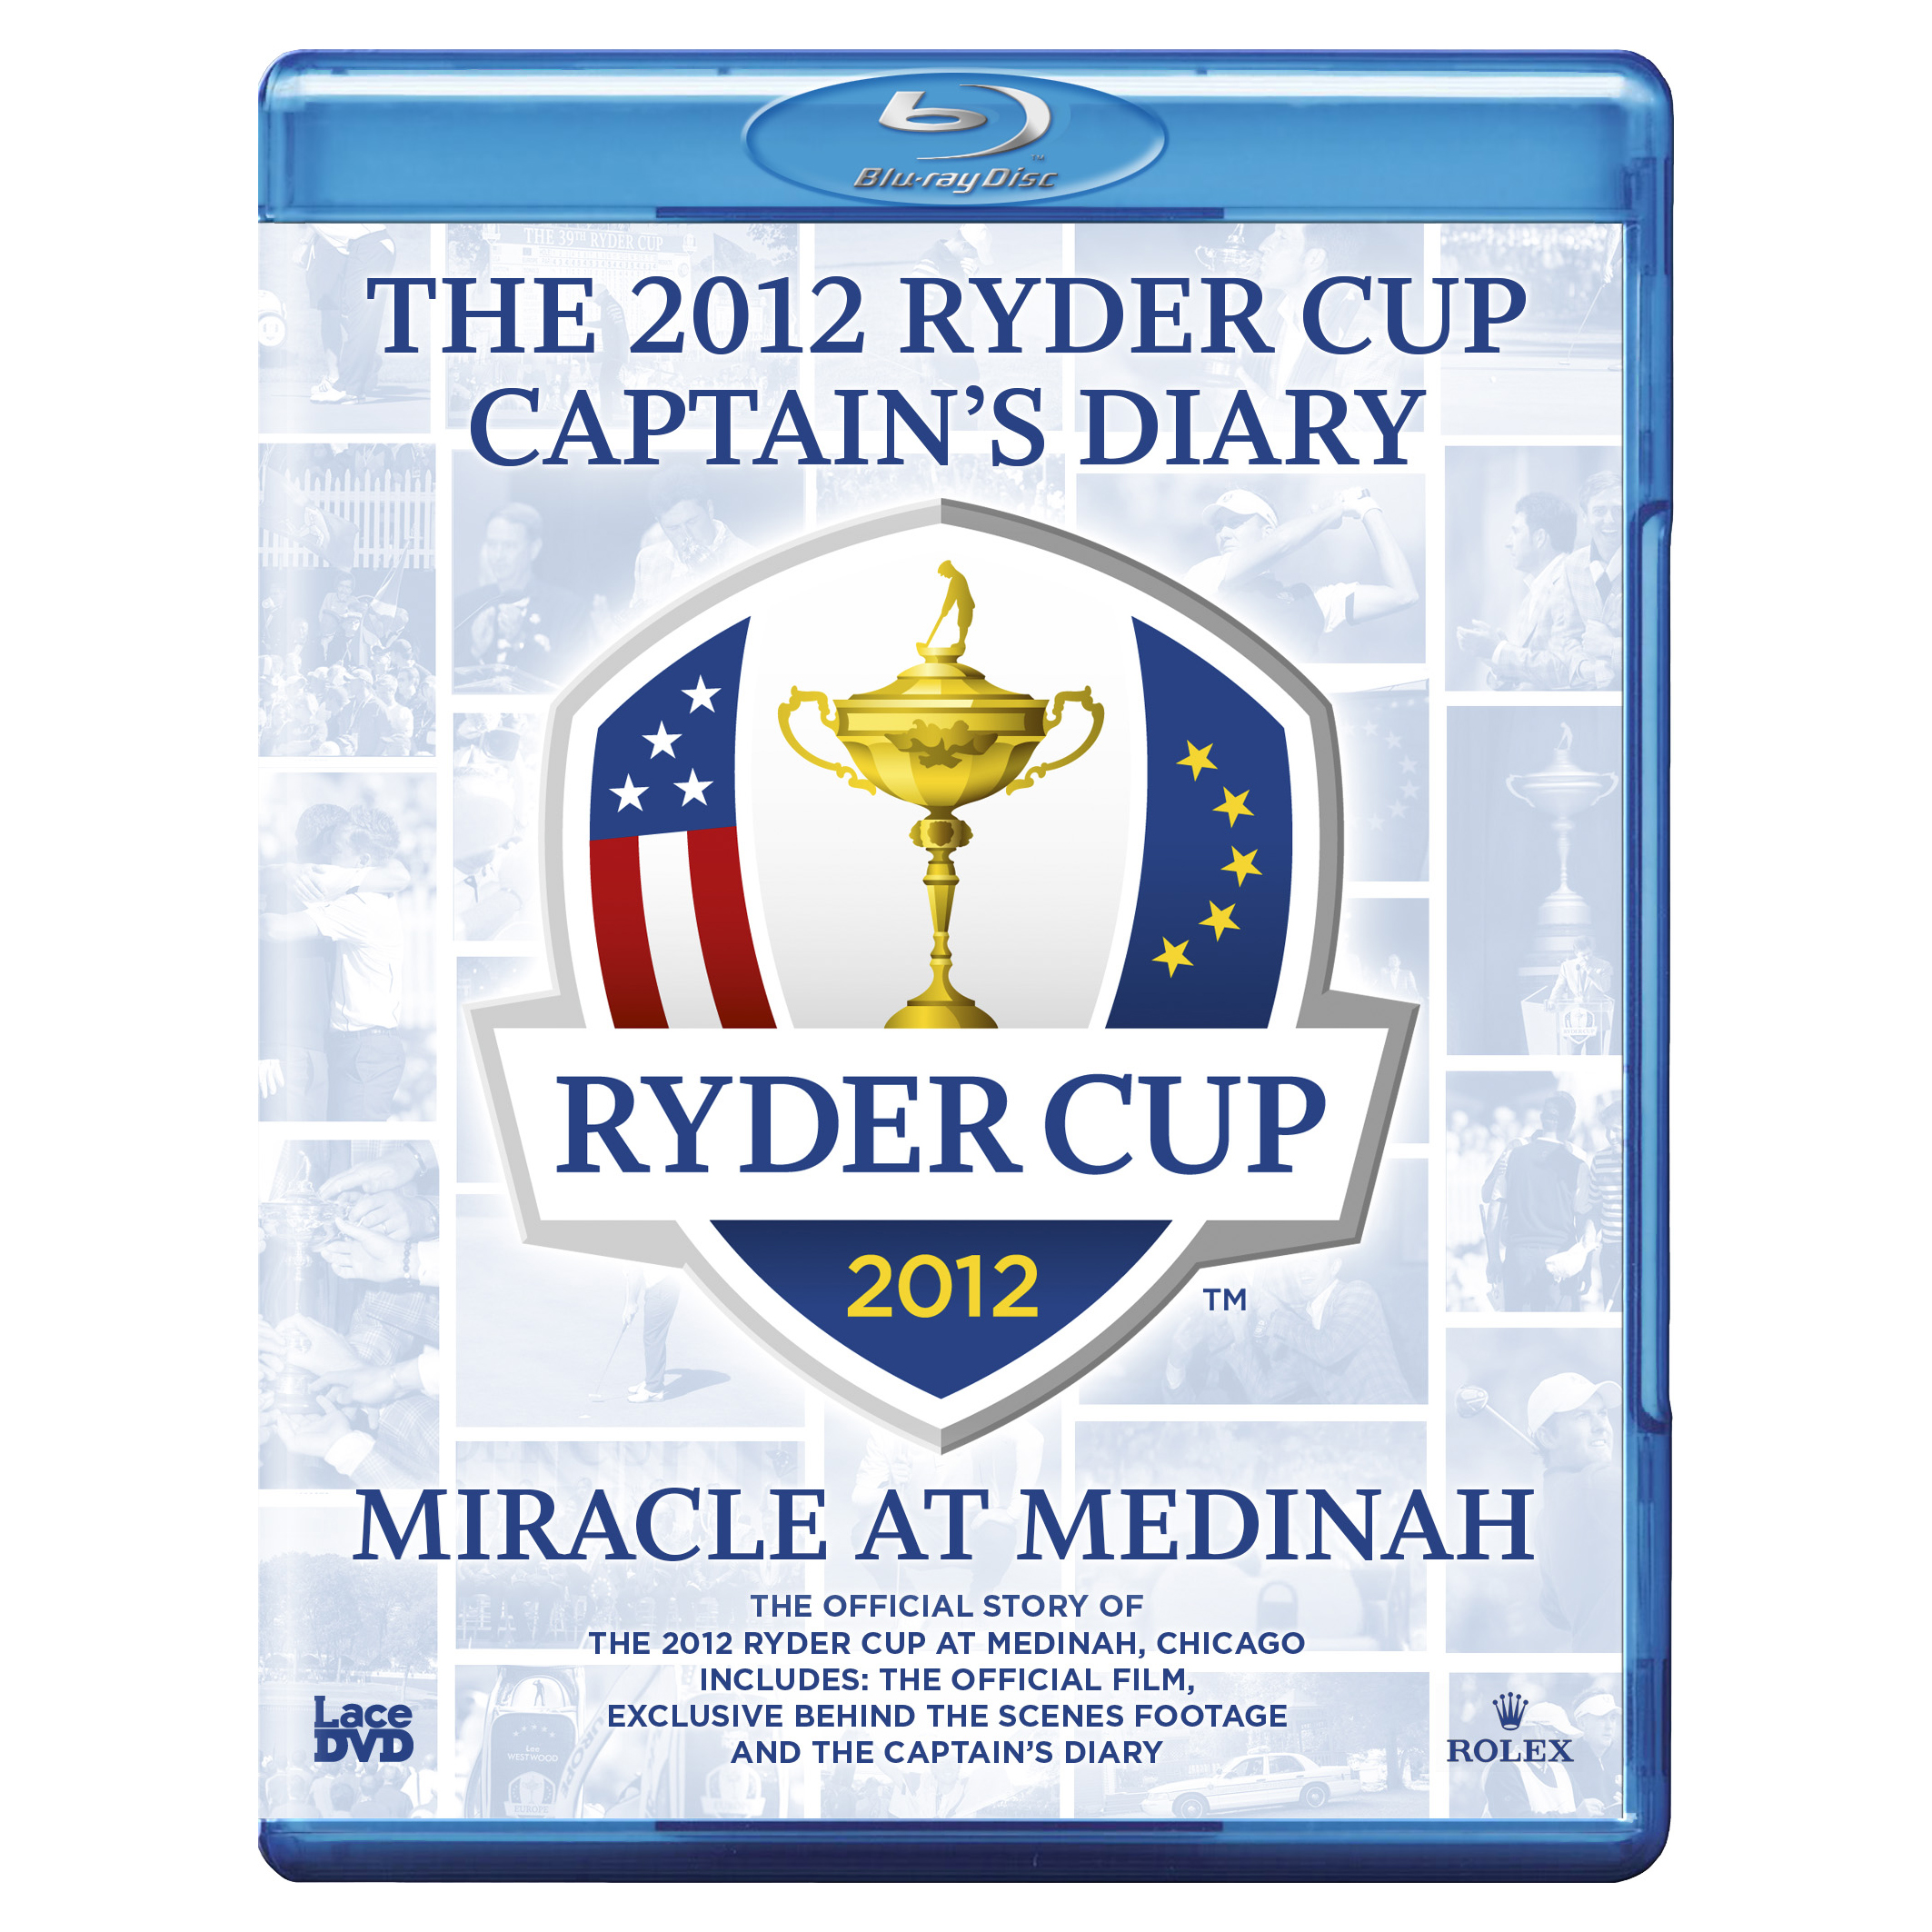 The 2012 Ryder Cup Medinah Diary and Official Film (39th) Blu-ray